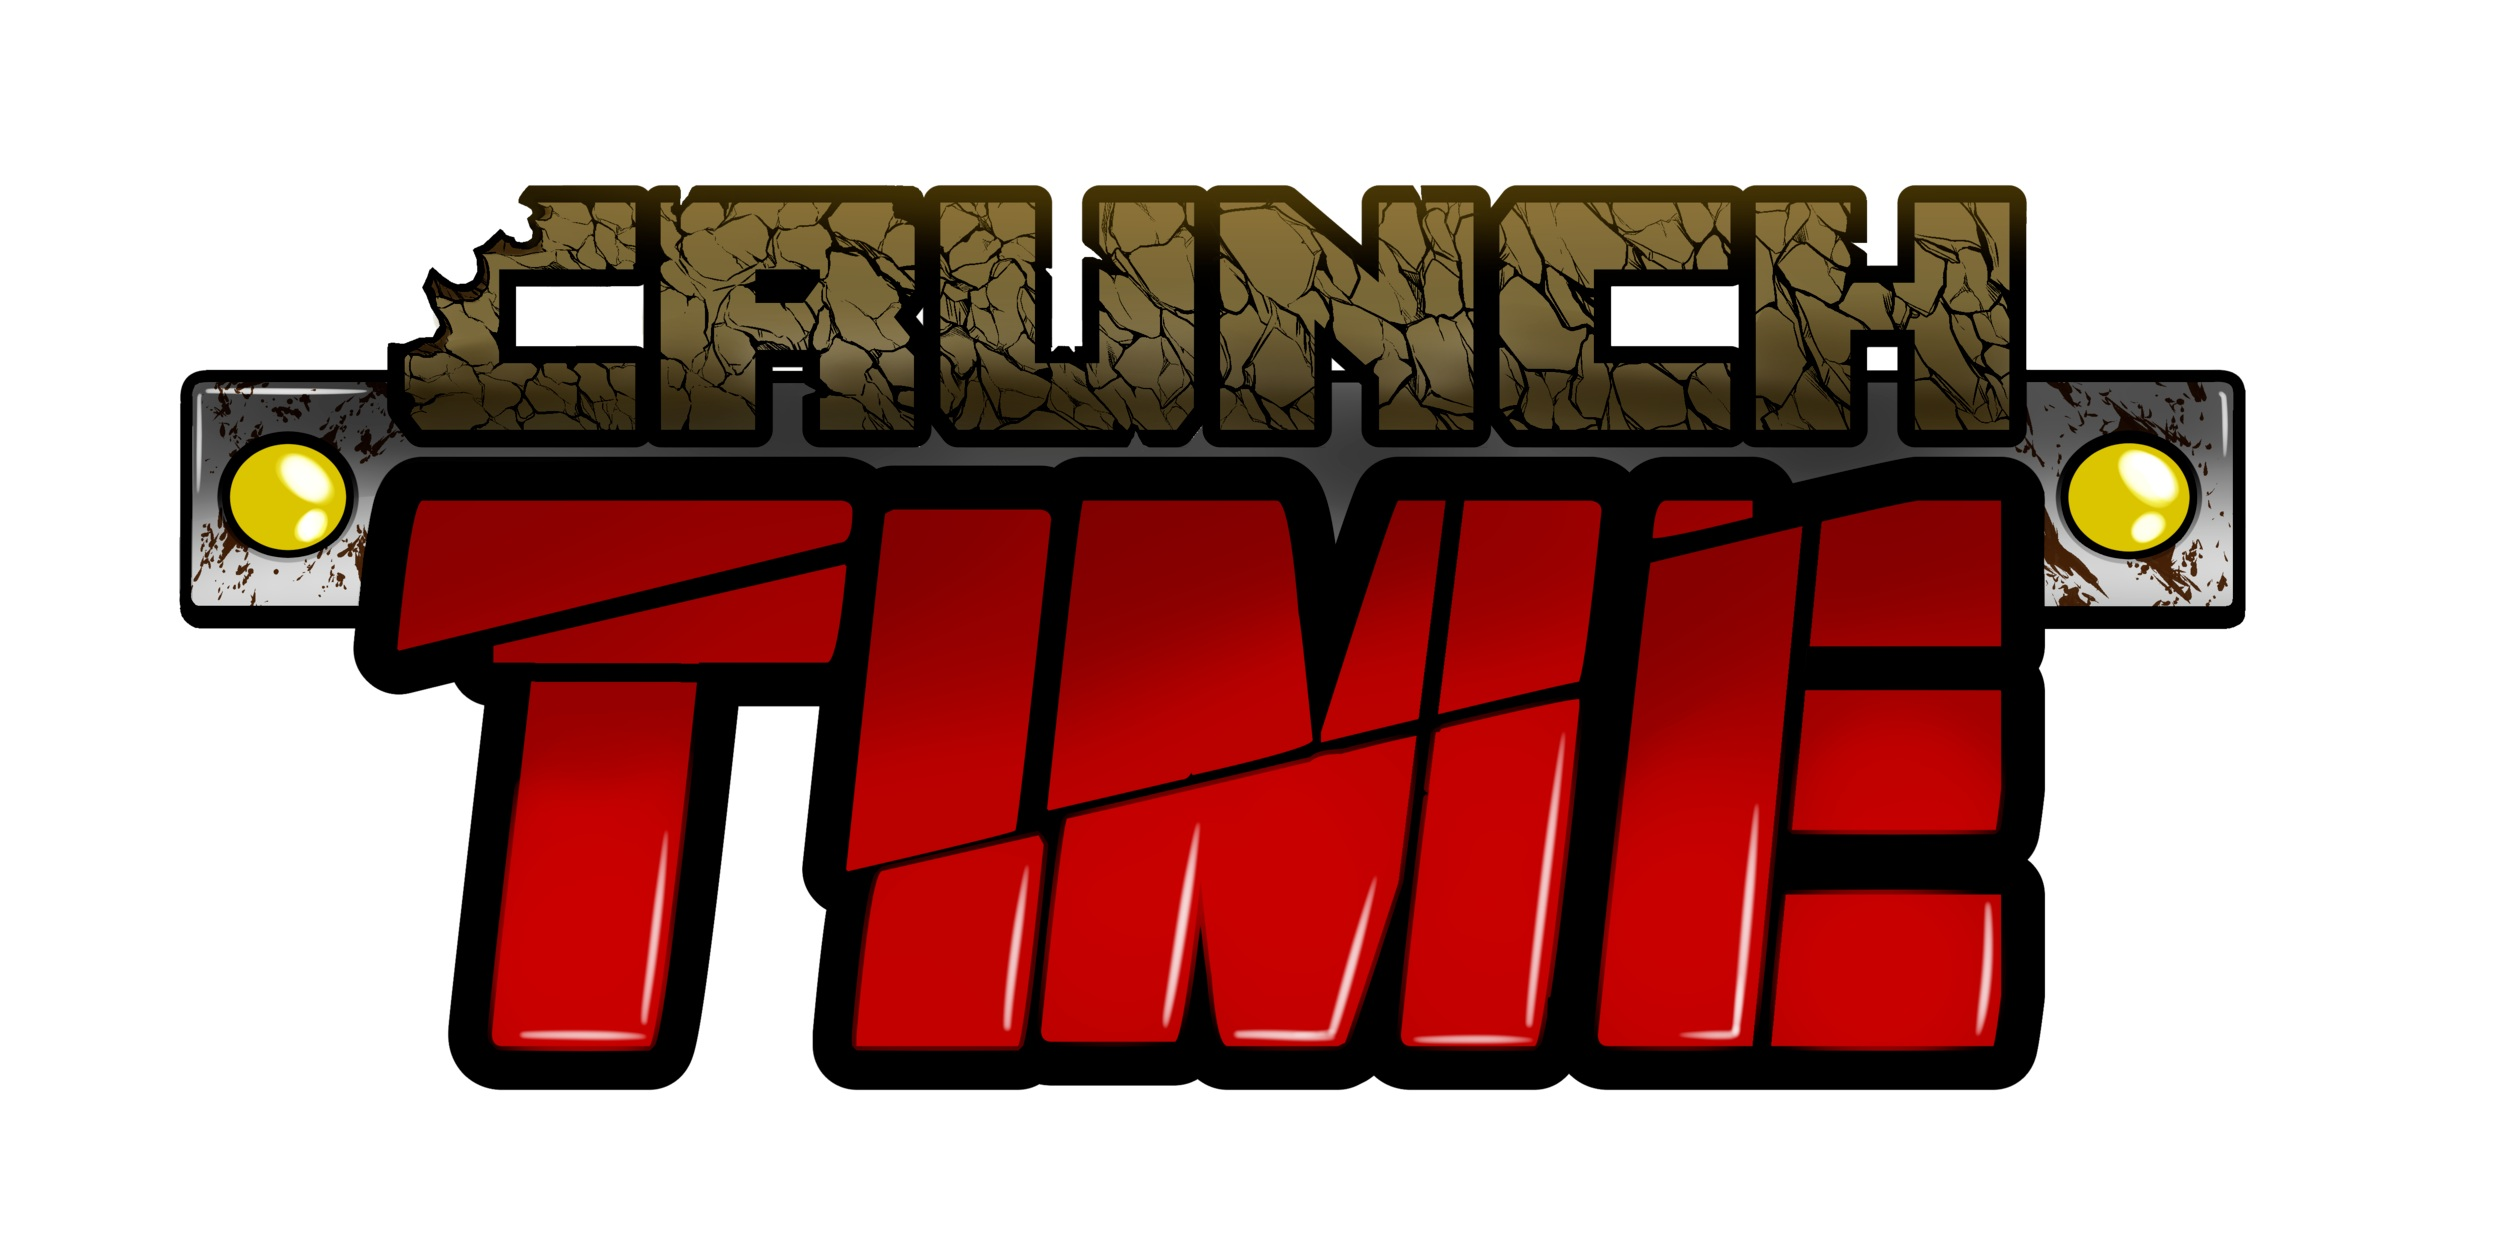 crunch+time+LOGO.jpg